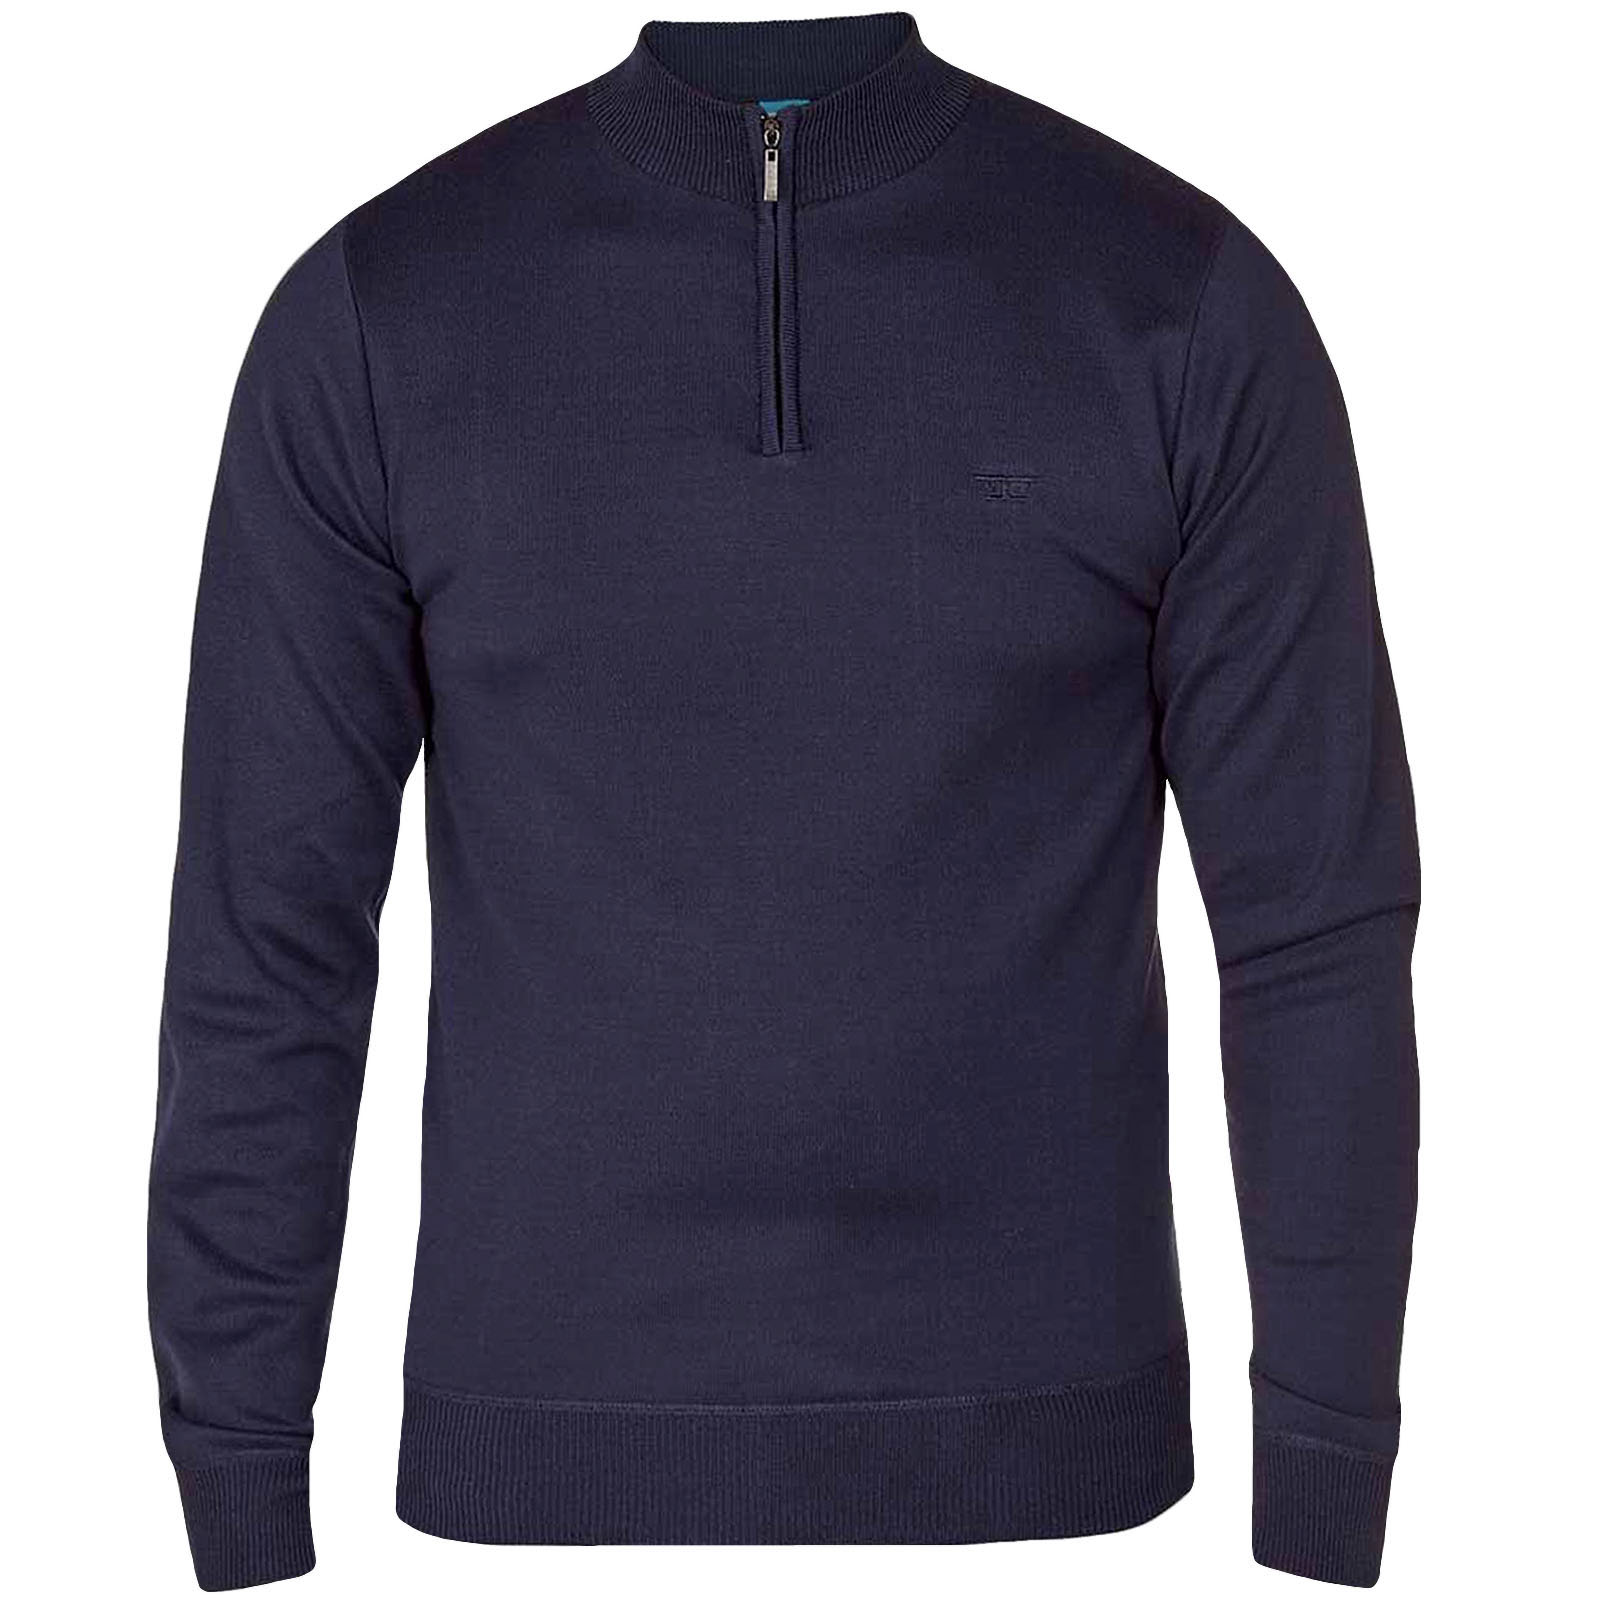 Duke Duke Duke D555 Homme Dexter Plain 1/4 Zip Neck Pullover Sweater Jumper Top ae3782